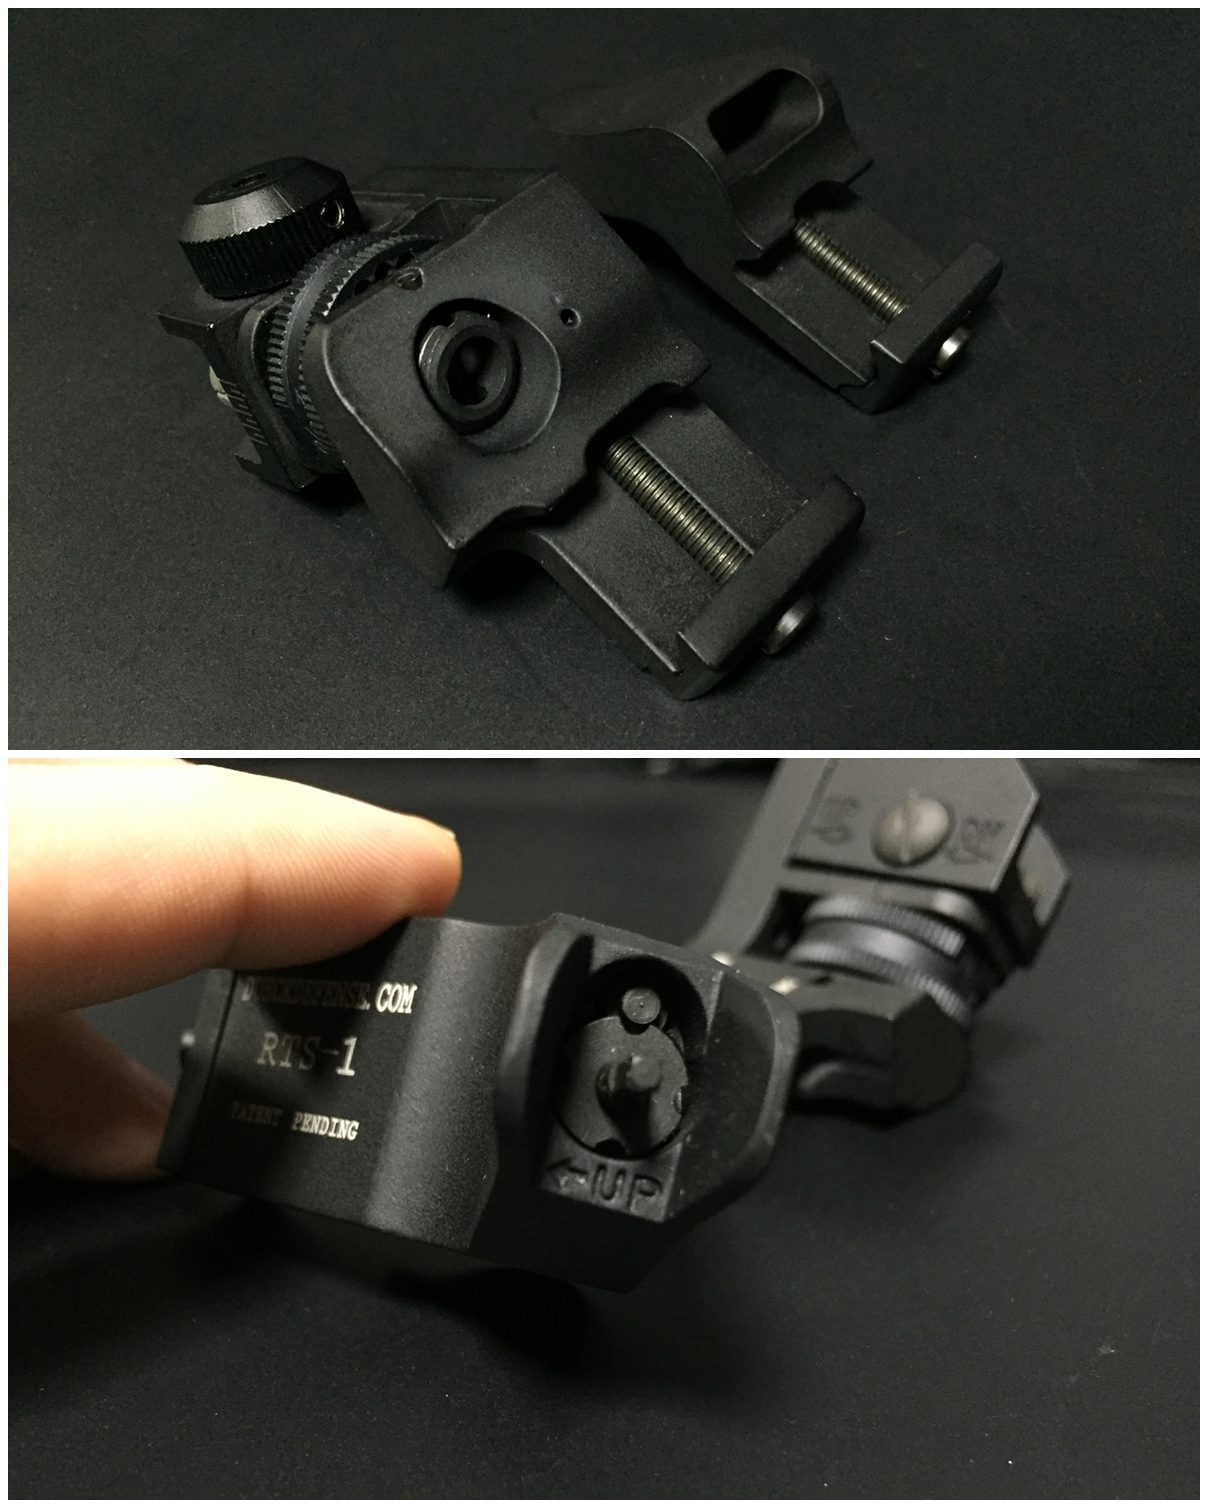 8 RAPID TRANSITION SIGHT FRONT & REAR DUECK DEFENSE TYPE ラピッドトランジションサイト オフセットサイト カスタム 取付 実物 レプリカ 比較